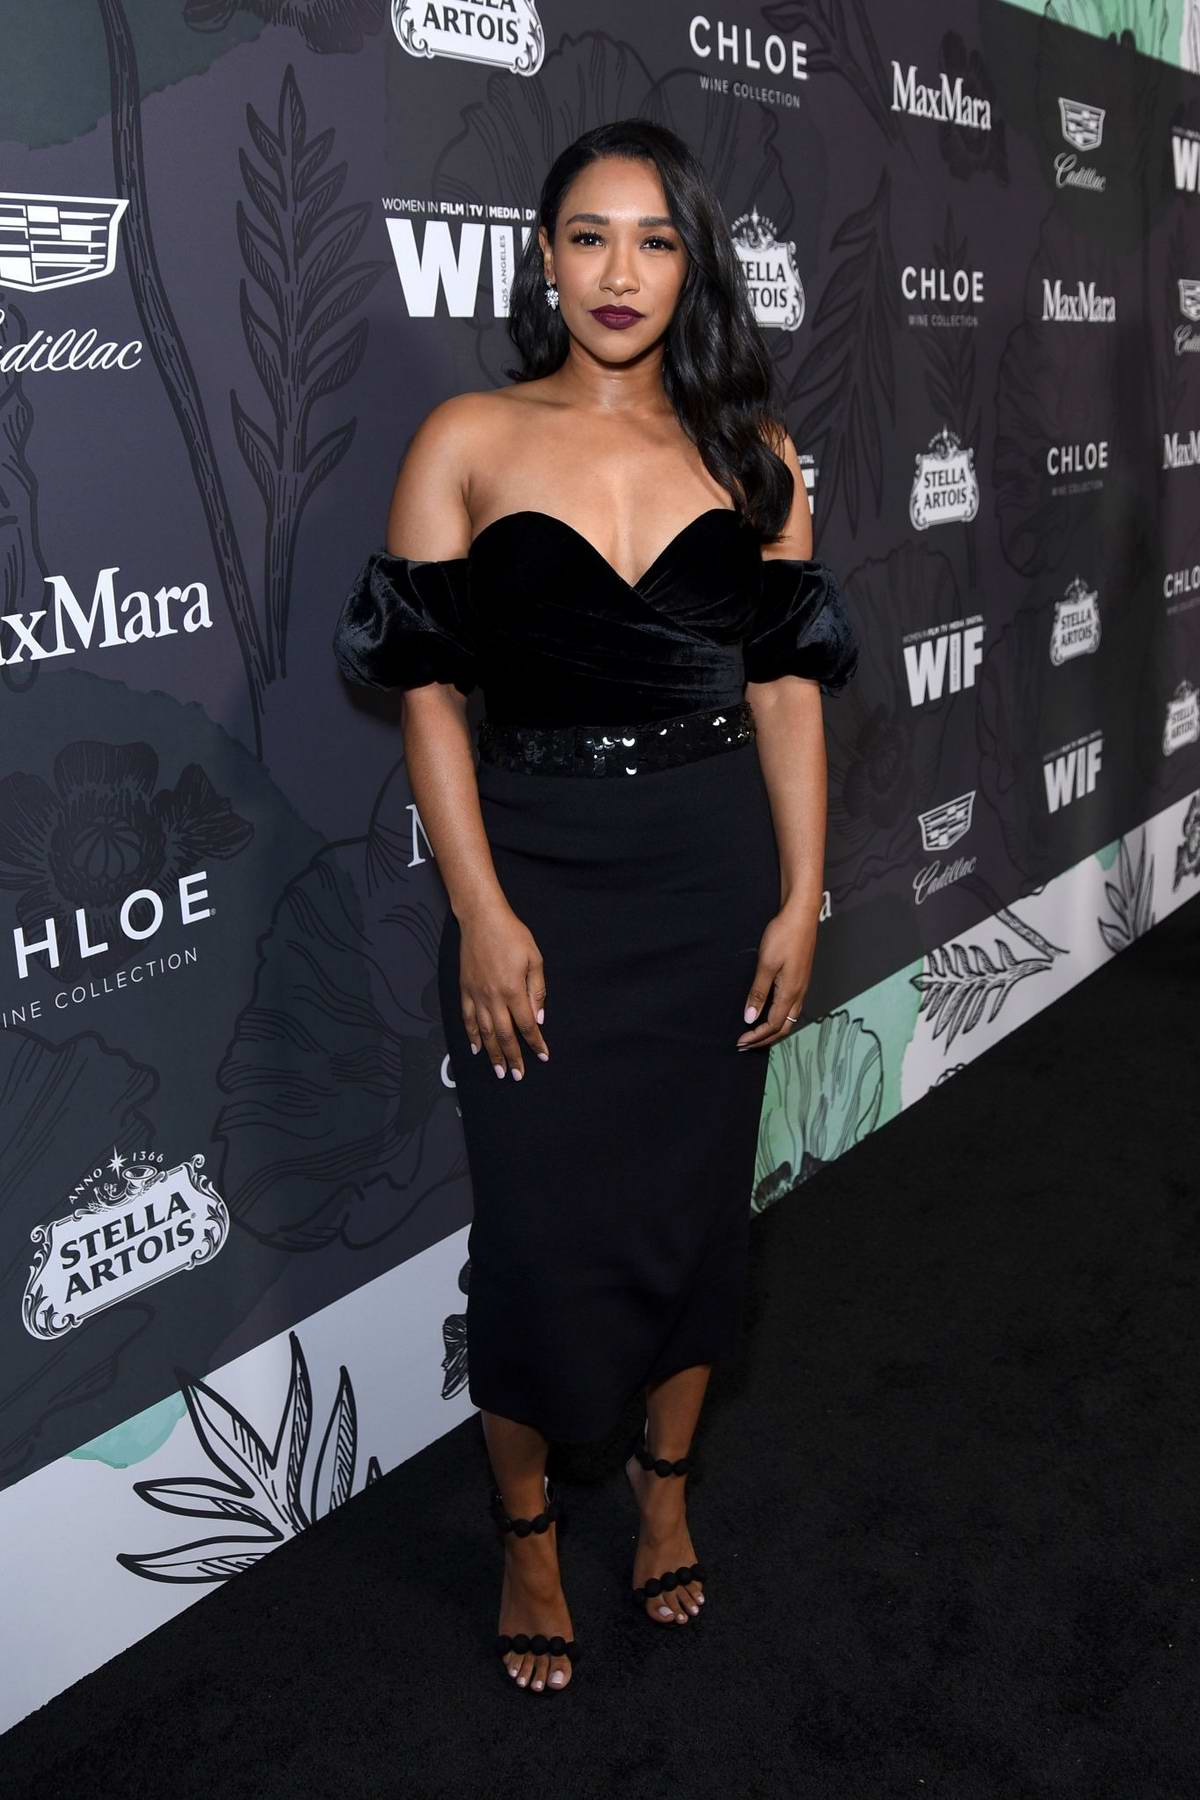 Candice Patton attends the 12th Annual Women In Film Oscar Party in Beverly Hills, Los Angeles